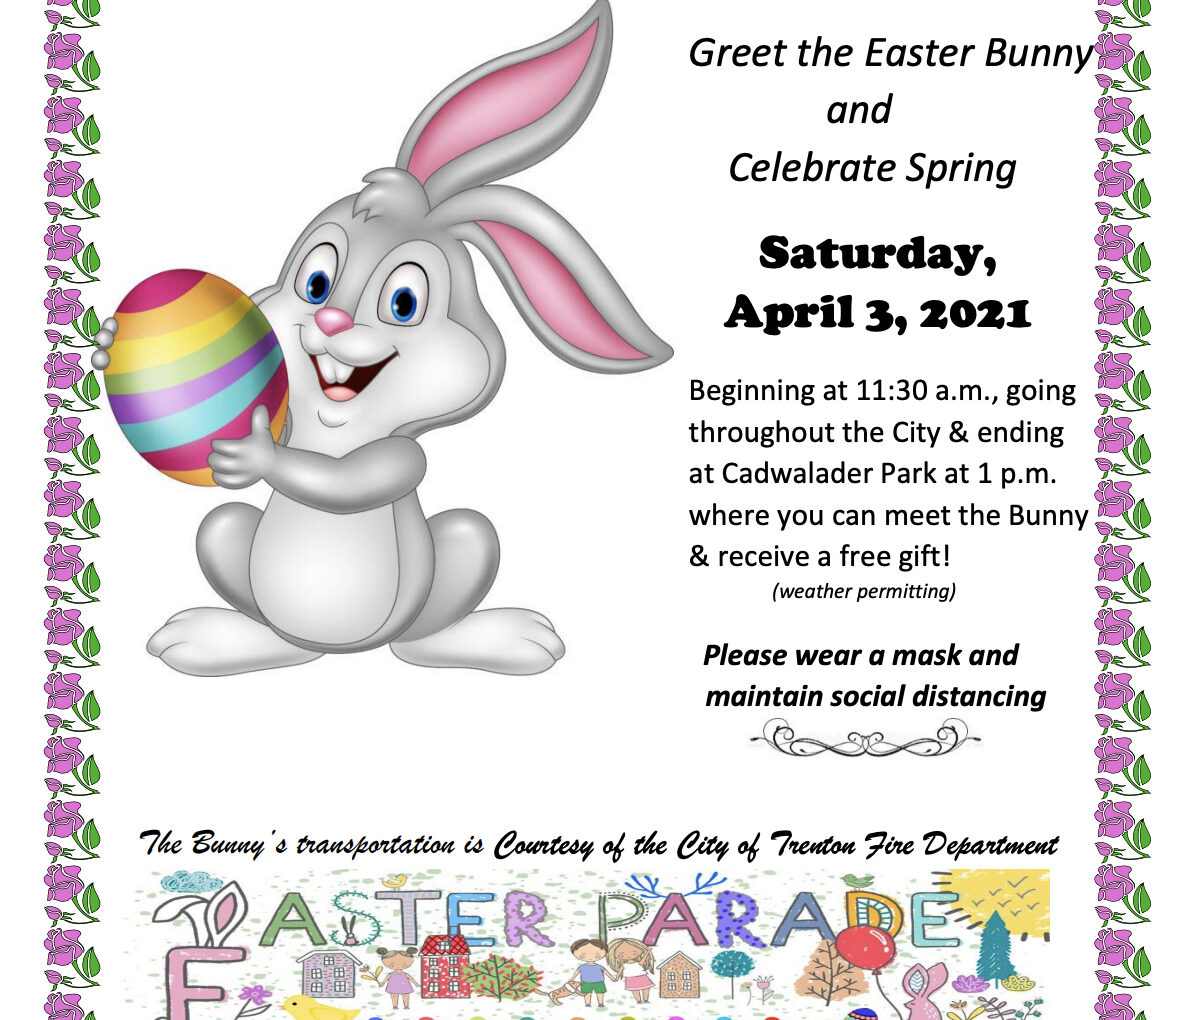 The Easter Bunny Comes to Trenton!